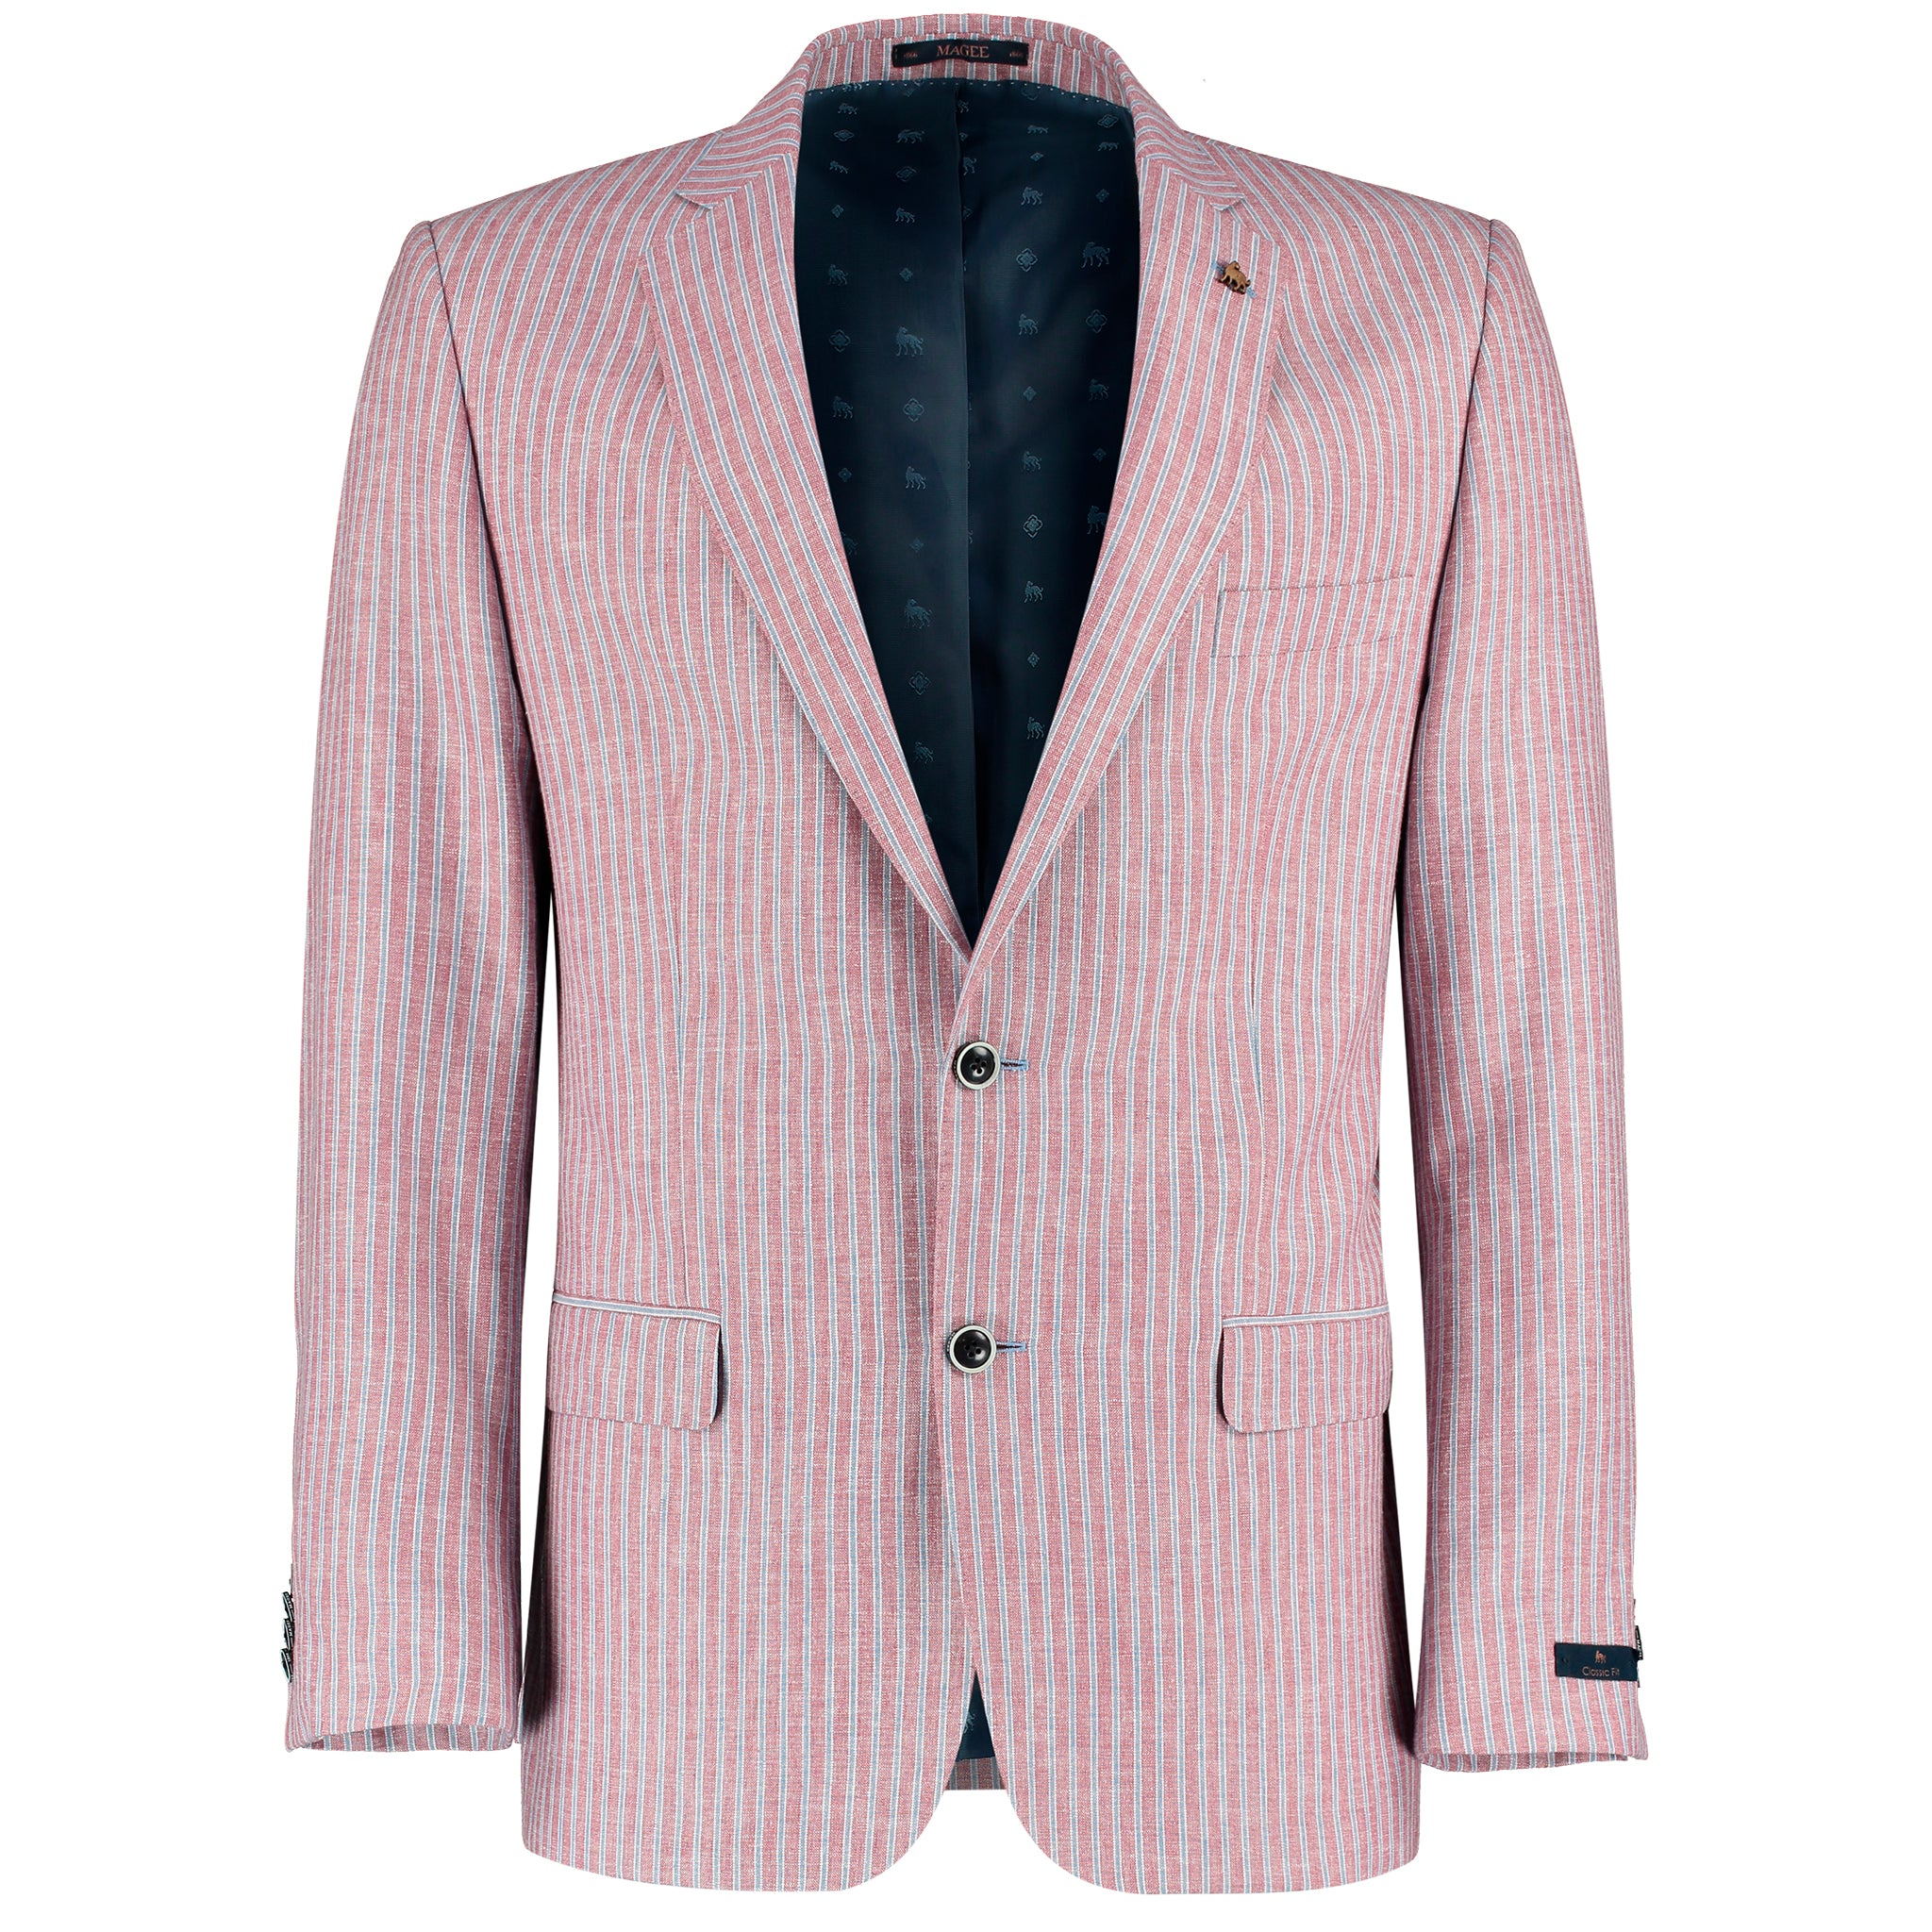 Magee Nice T2 Jacket for Men in Pink Blue Stripe